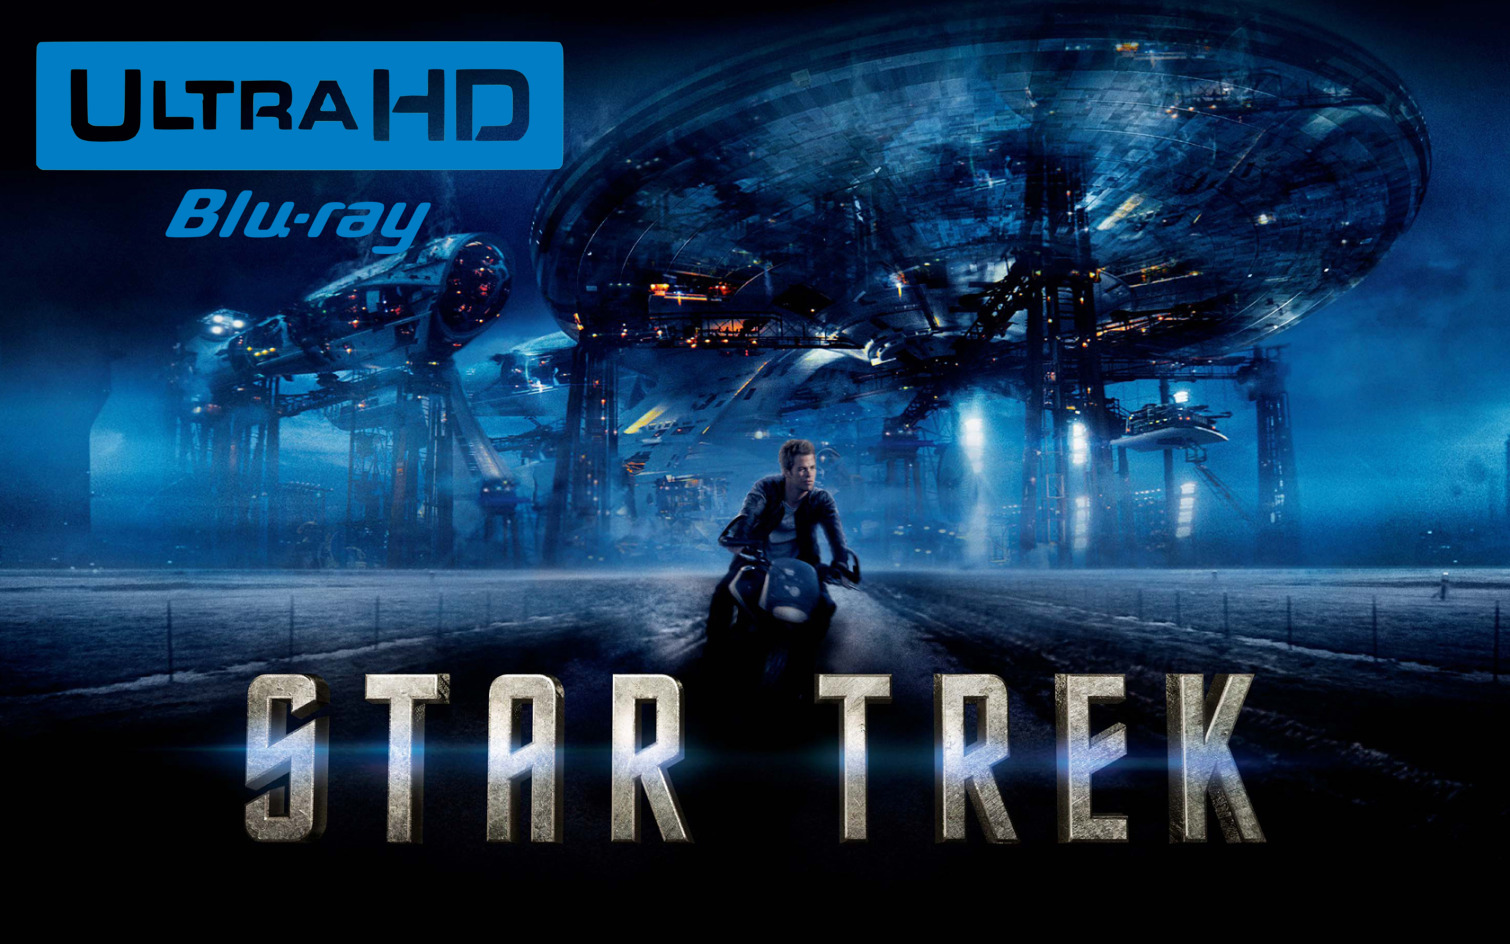 Star Trek 4K (2009) 4K Ultra HD Blu-ray Pre-order Buy Now